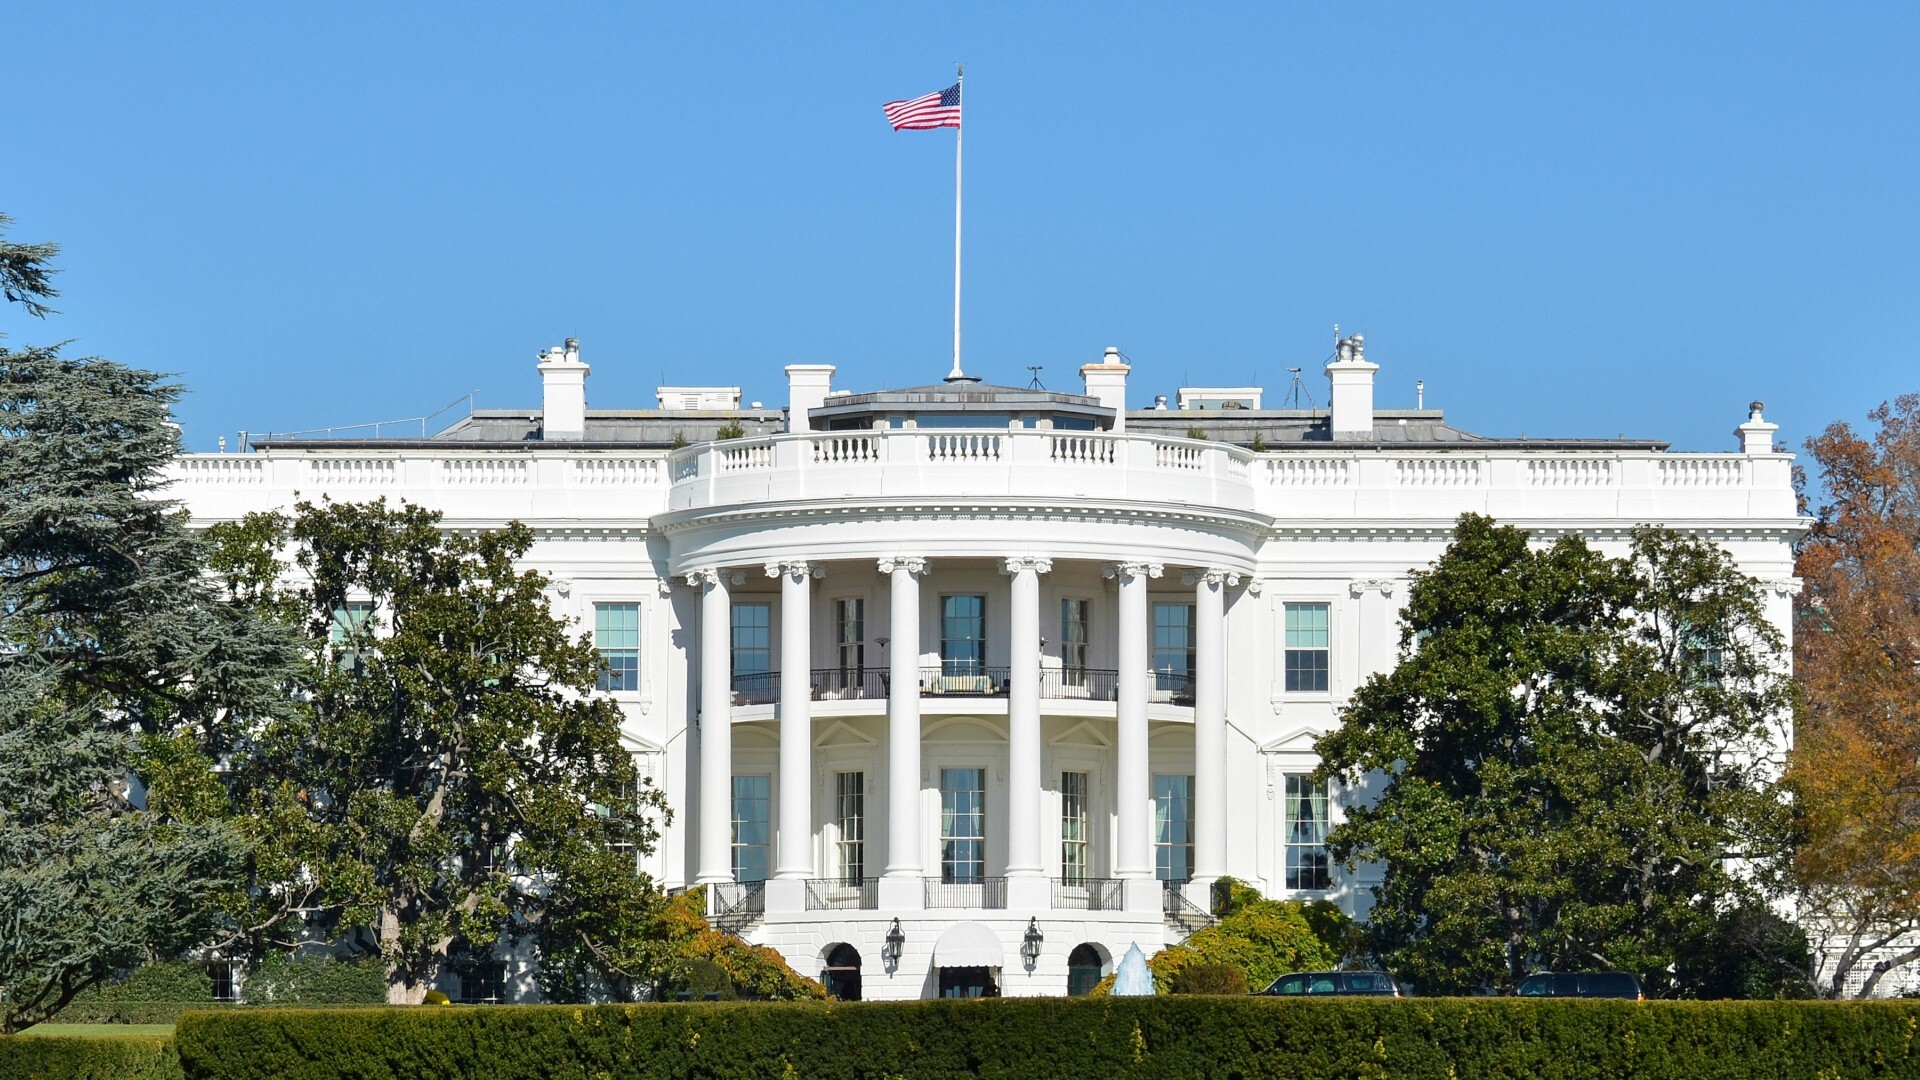 White House ficial Residence in Washington DC United States of